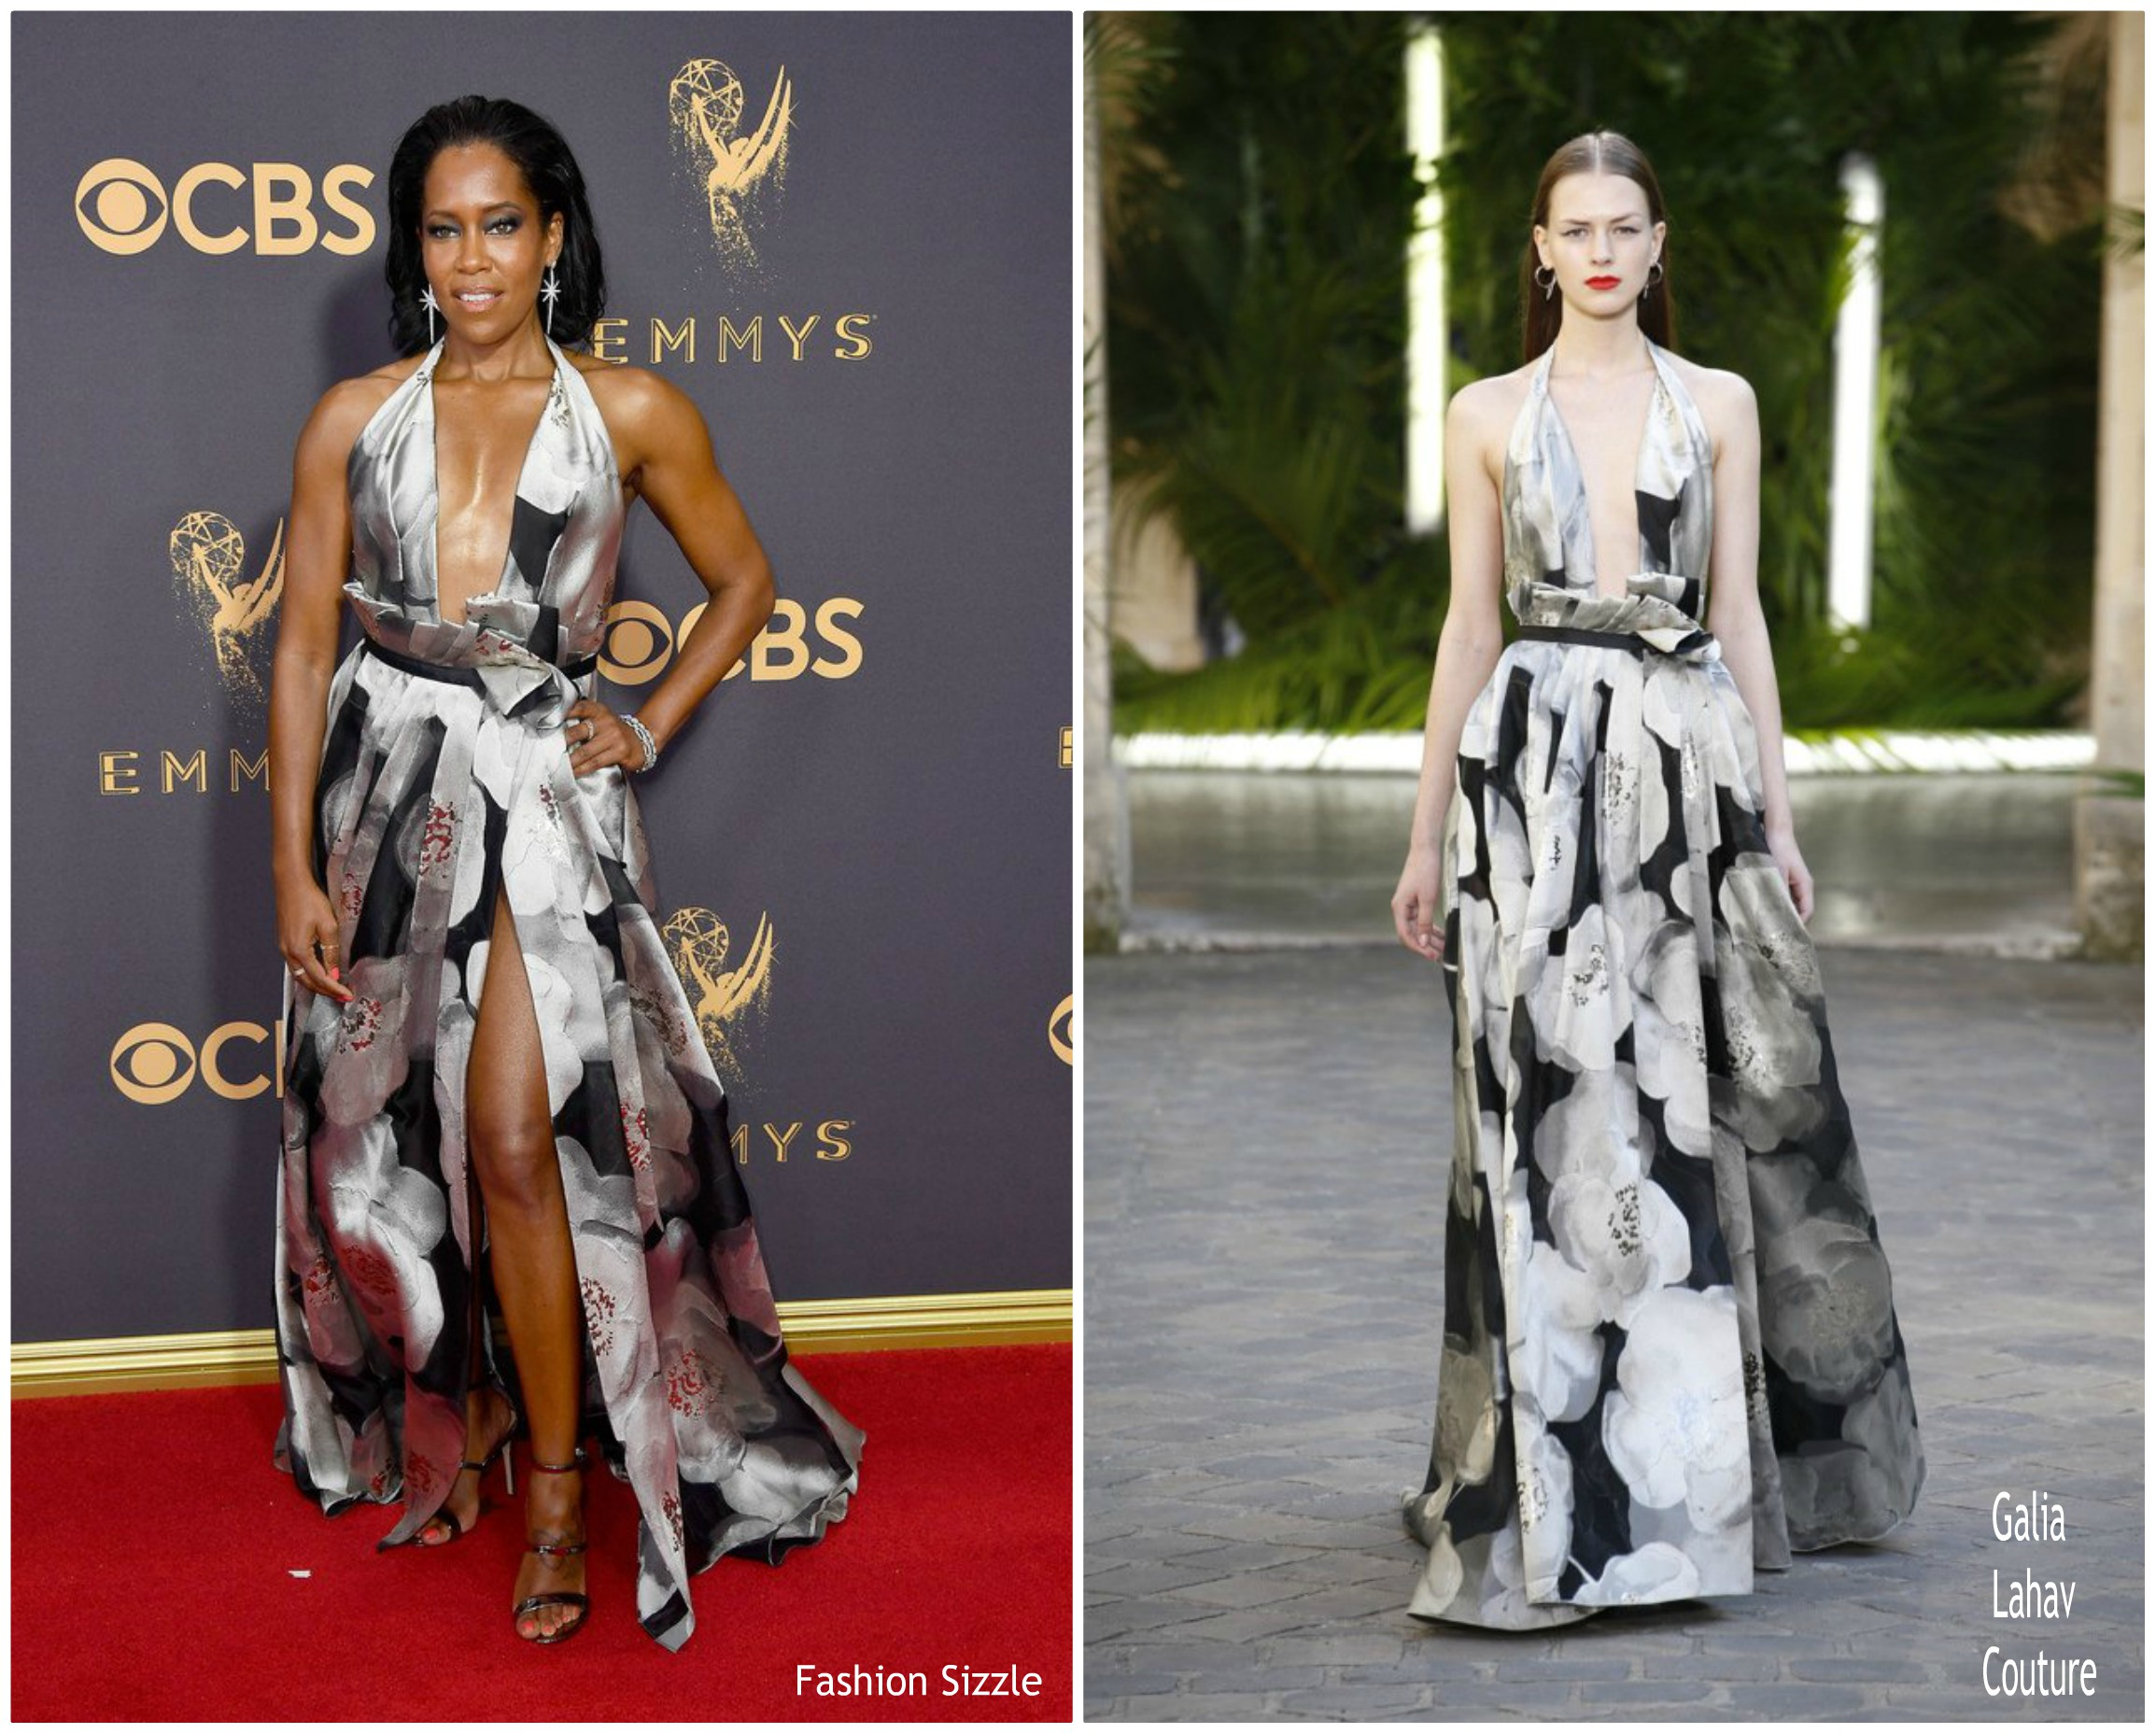 regina-king-in-galia-lahav-couture-2017-emmy-awards